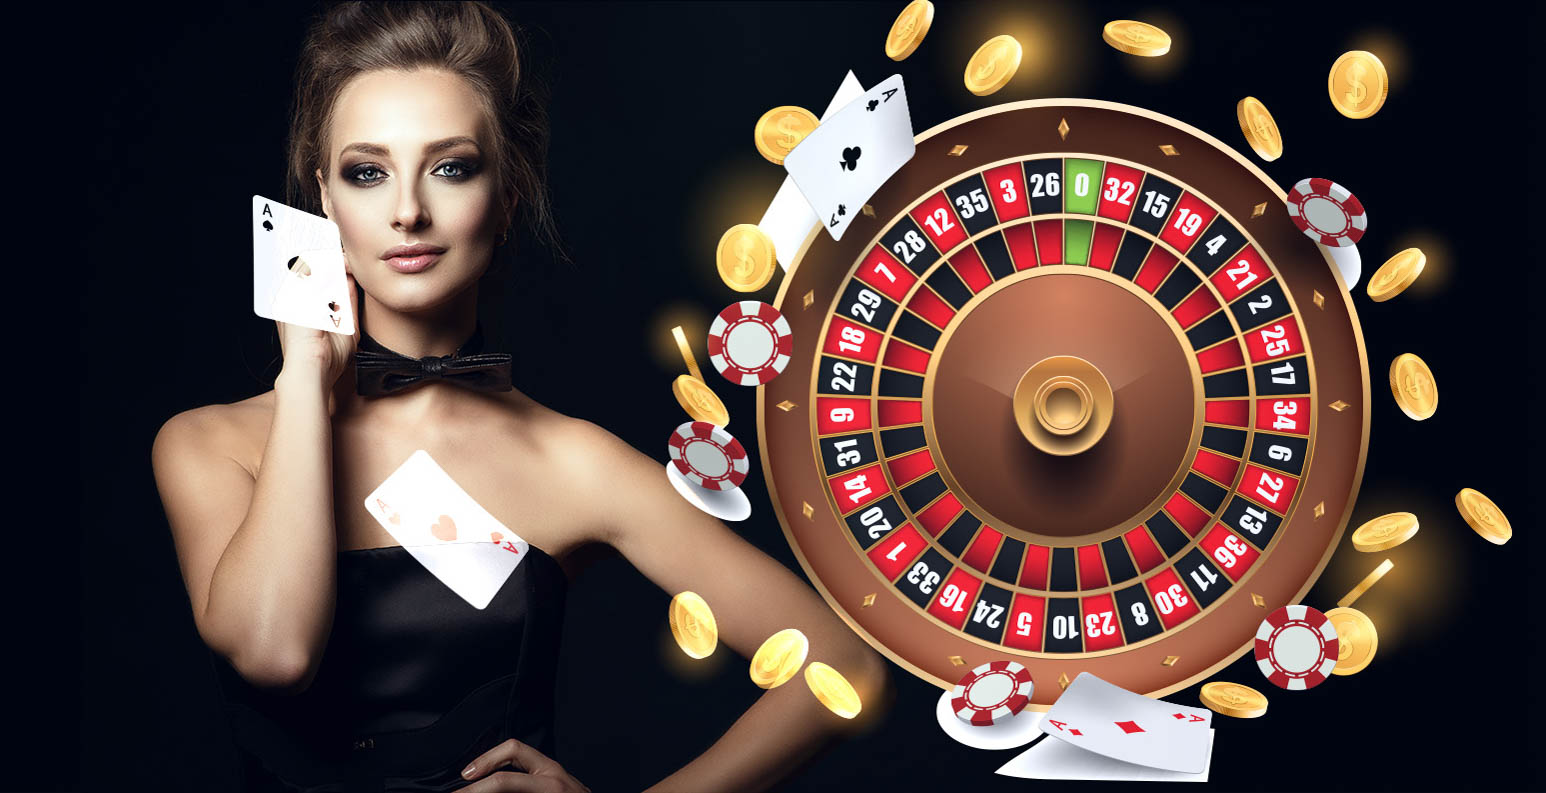 Discount Casino Minimum yatirim tutari